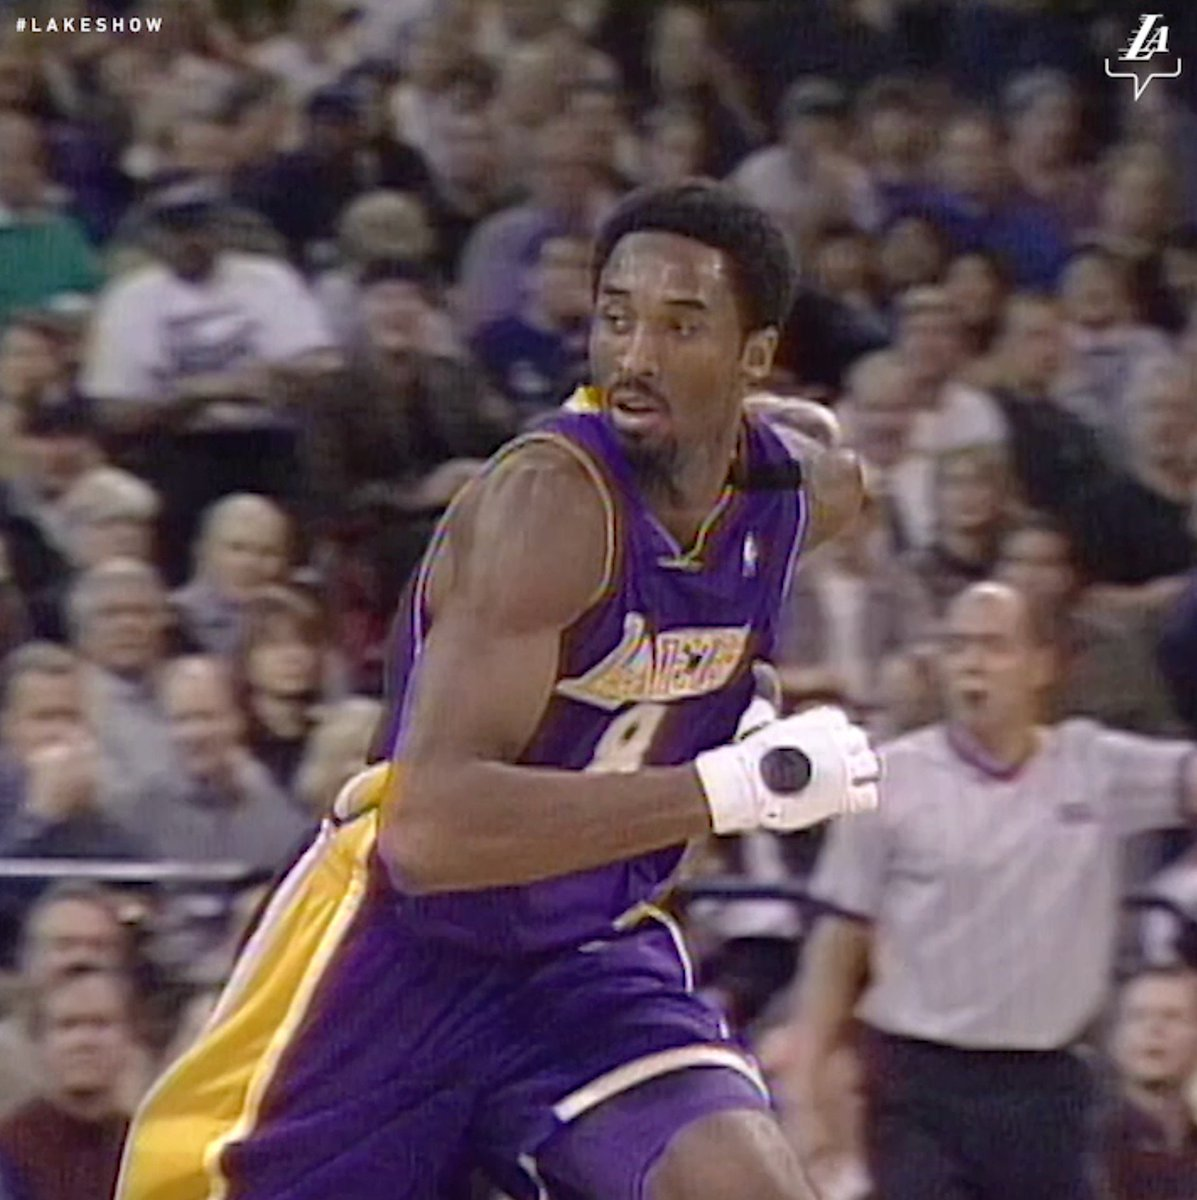 RT @Lakers: That time Kobe balled in one glove after breaking his hand. https://t.co/wEeAKL9sPd